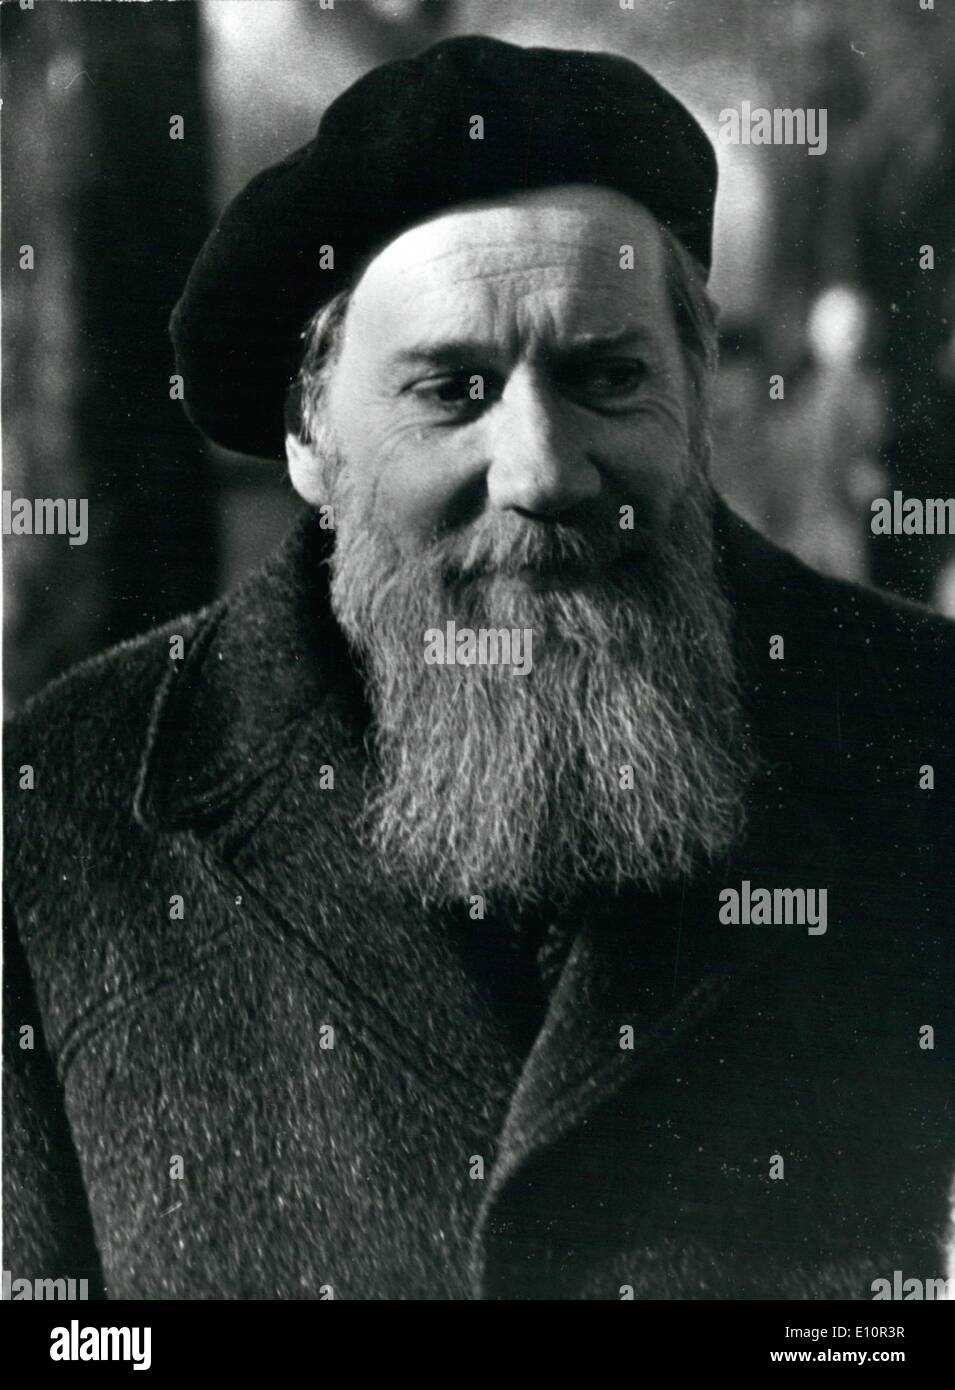 Dec. 12, 1973 - Russian Writer starts Literature Courses in Paris: Andre Siniavski, the Russian writer and poet who once get his works published aboard under the pseudonyme of Abraham Terz, and in consequence was arrested and served seven years in a concentration camp, sought asylum in France after his liberation, and has now started courses, at the Grand Palais, Paris, in Russian literature dealing with the early ages of Russian to the 20th. century. Photo shows Andre Siniavski pictured arriving at the Grand Palais, Paris, where he has started courses in Russian literature. - Stock Image